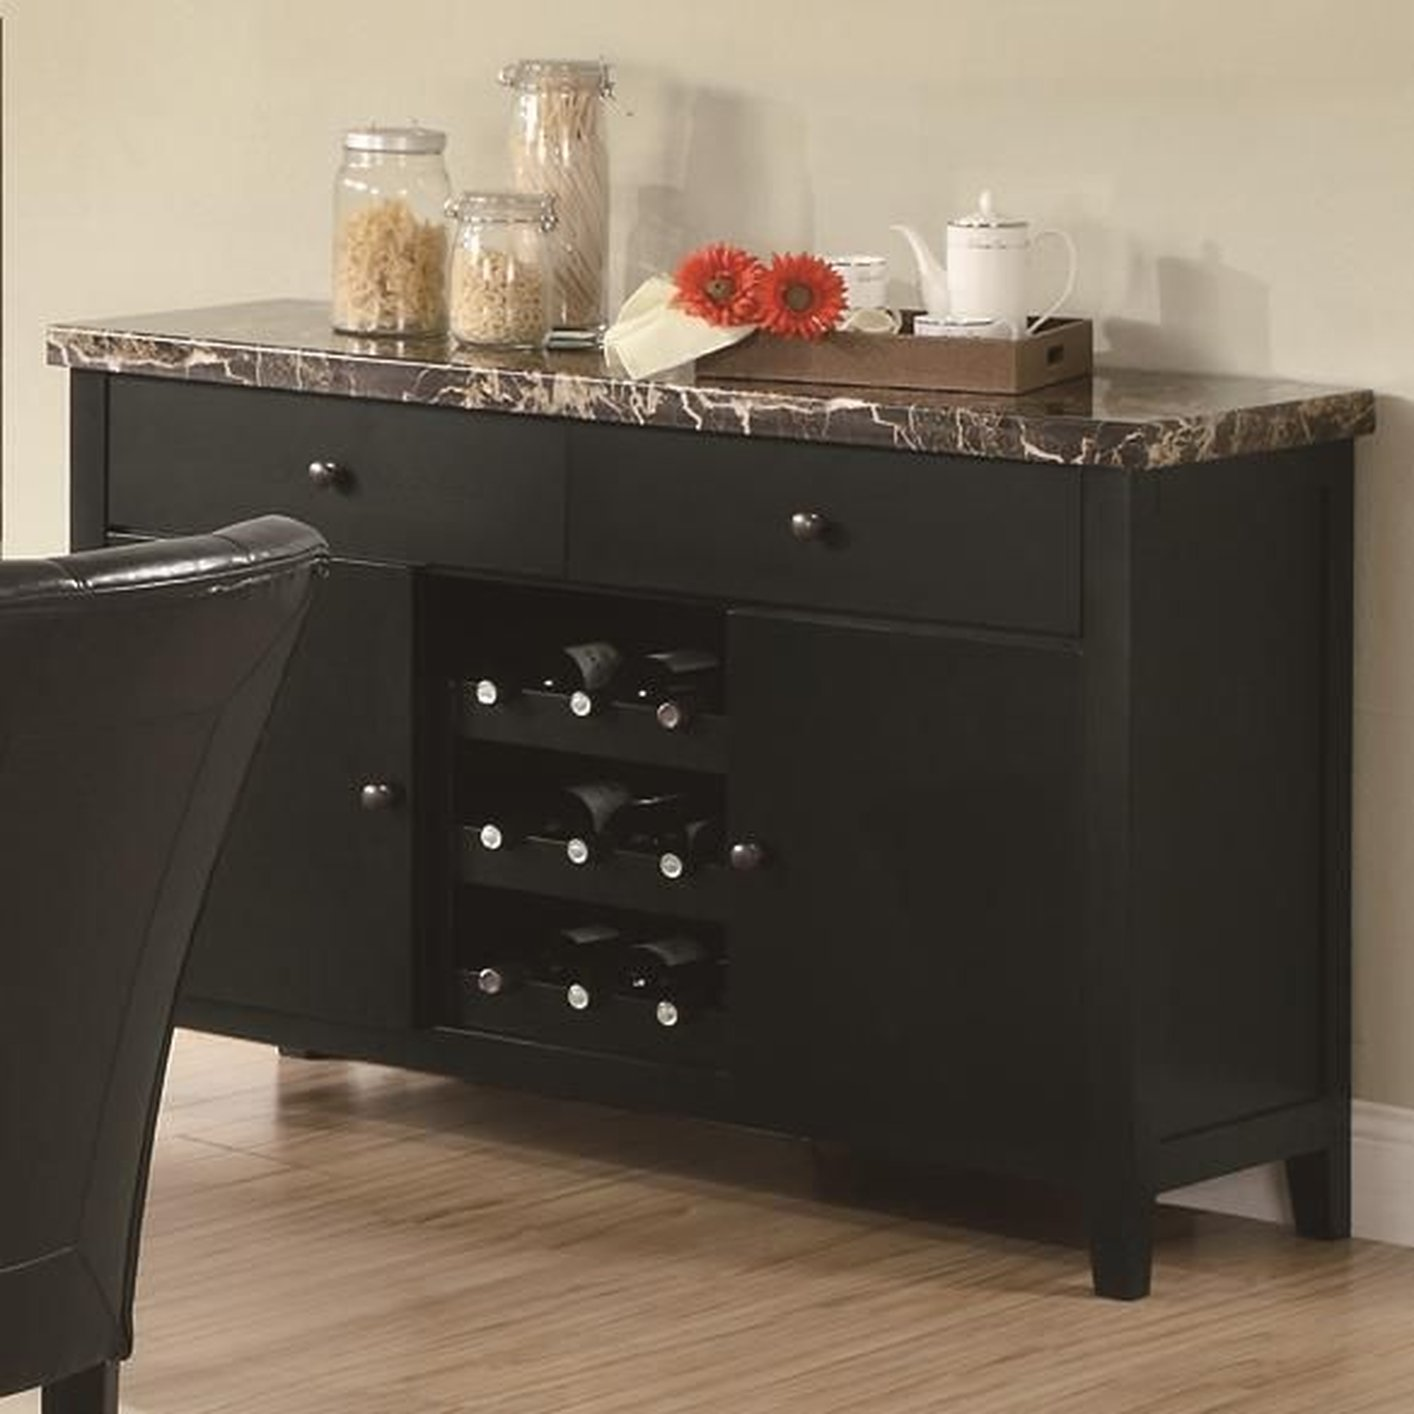 Black Marble Server - Steal-A-Sofa Furniture Outlet Los Angeles CA